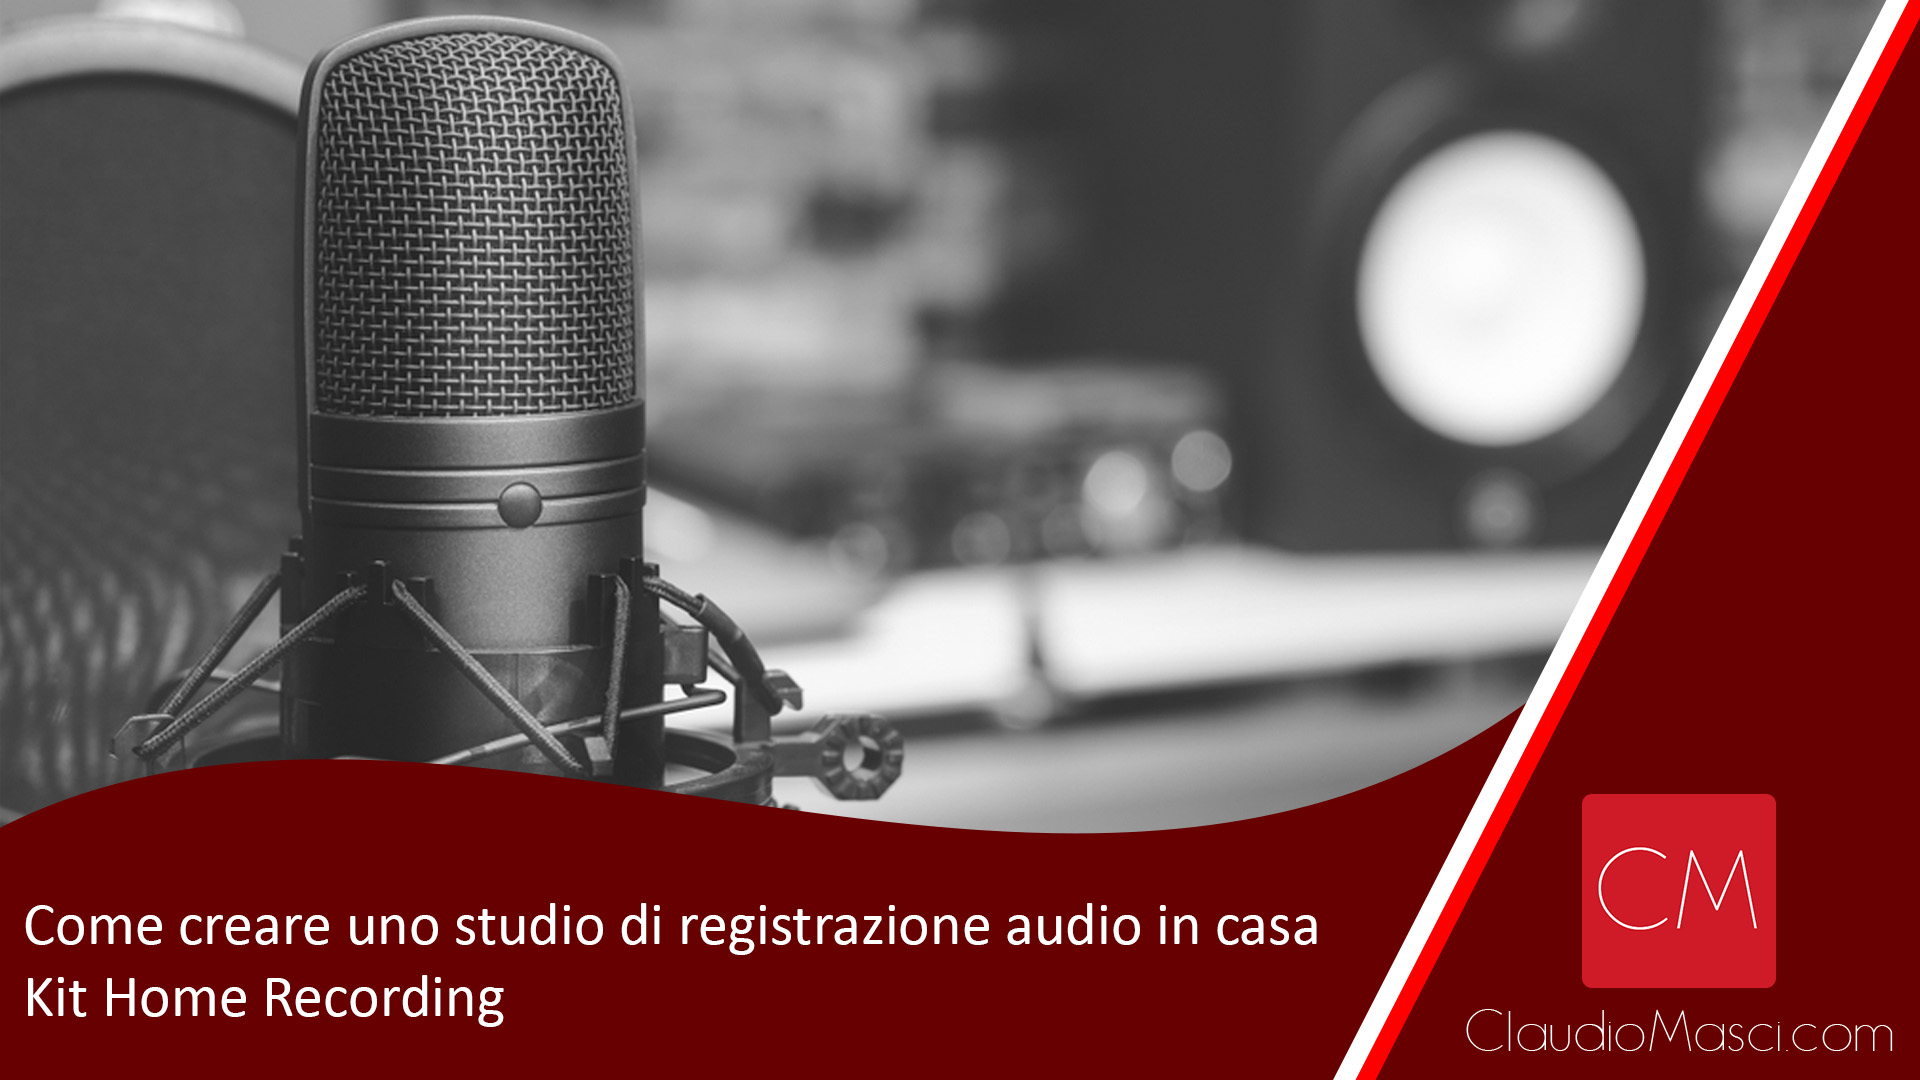 Come creare uno studio di registrazione audio in casa | Kit Home Recording